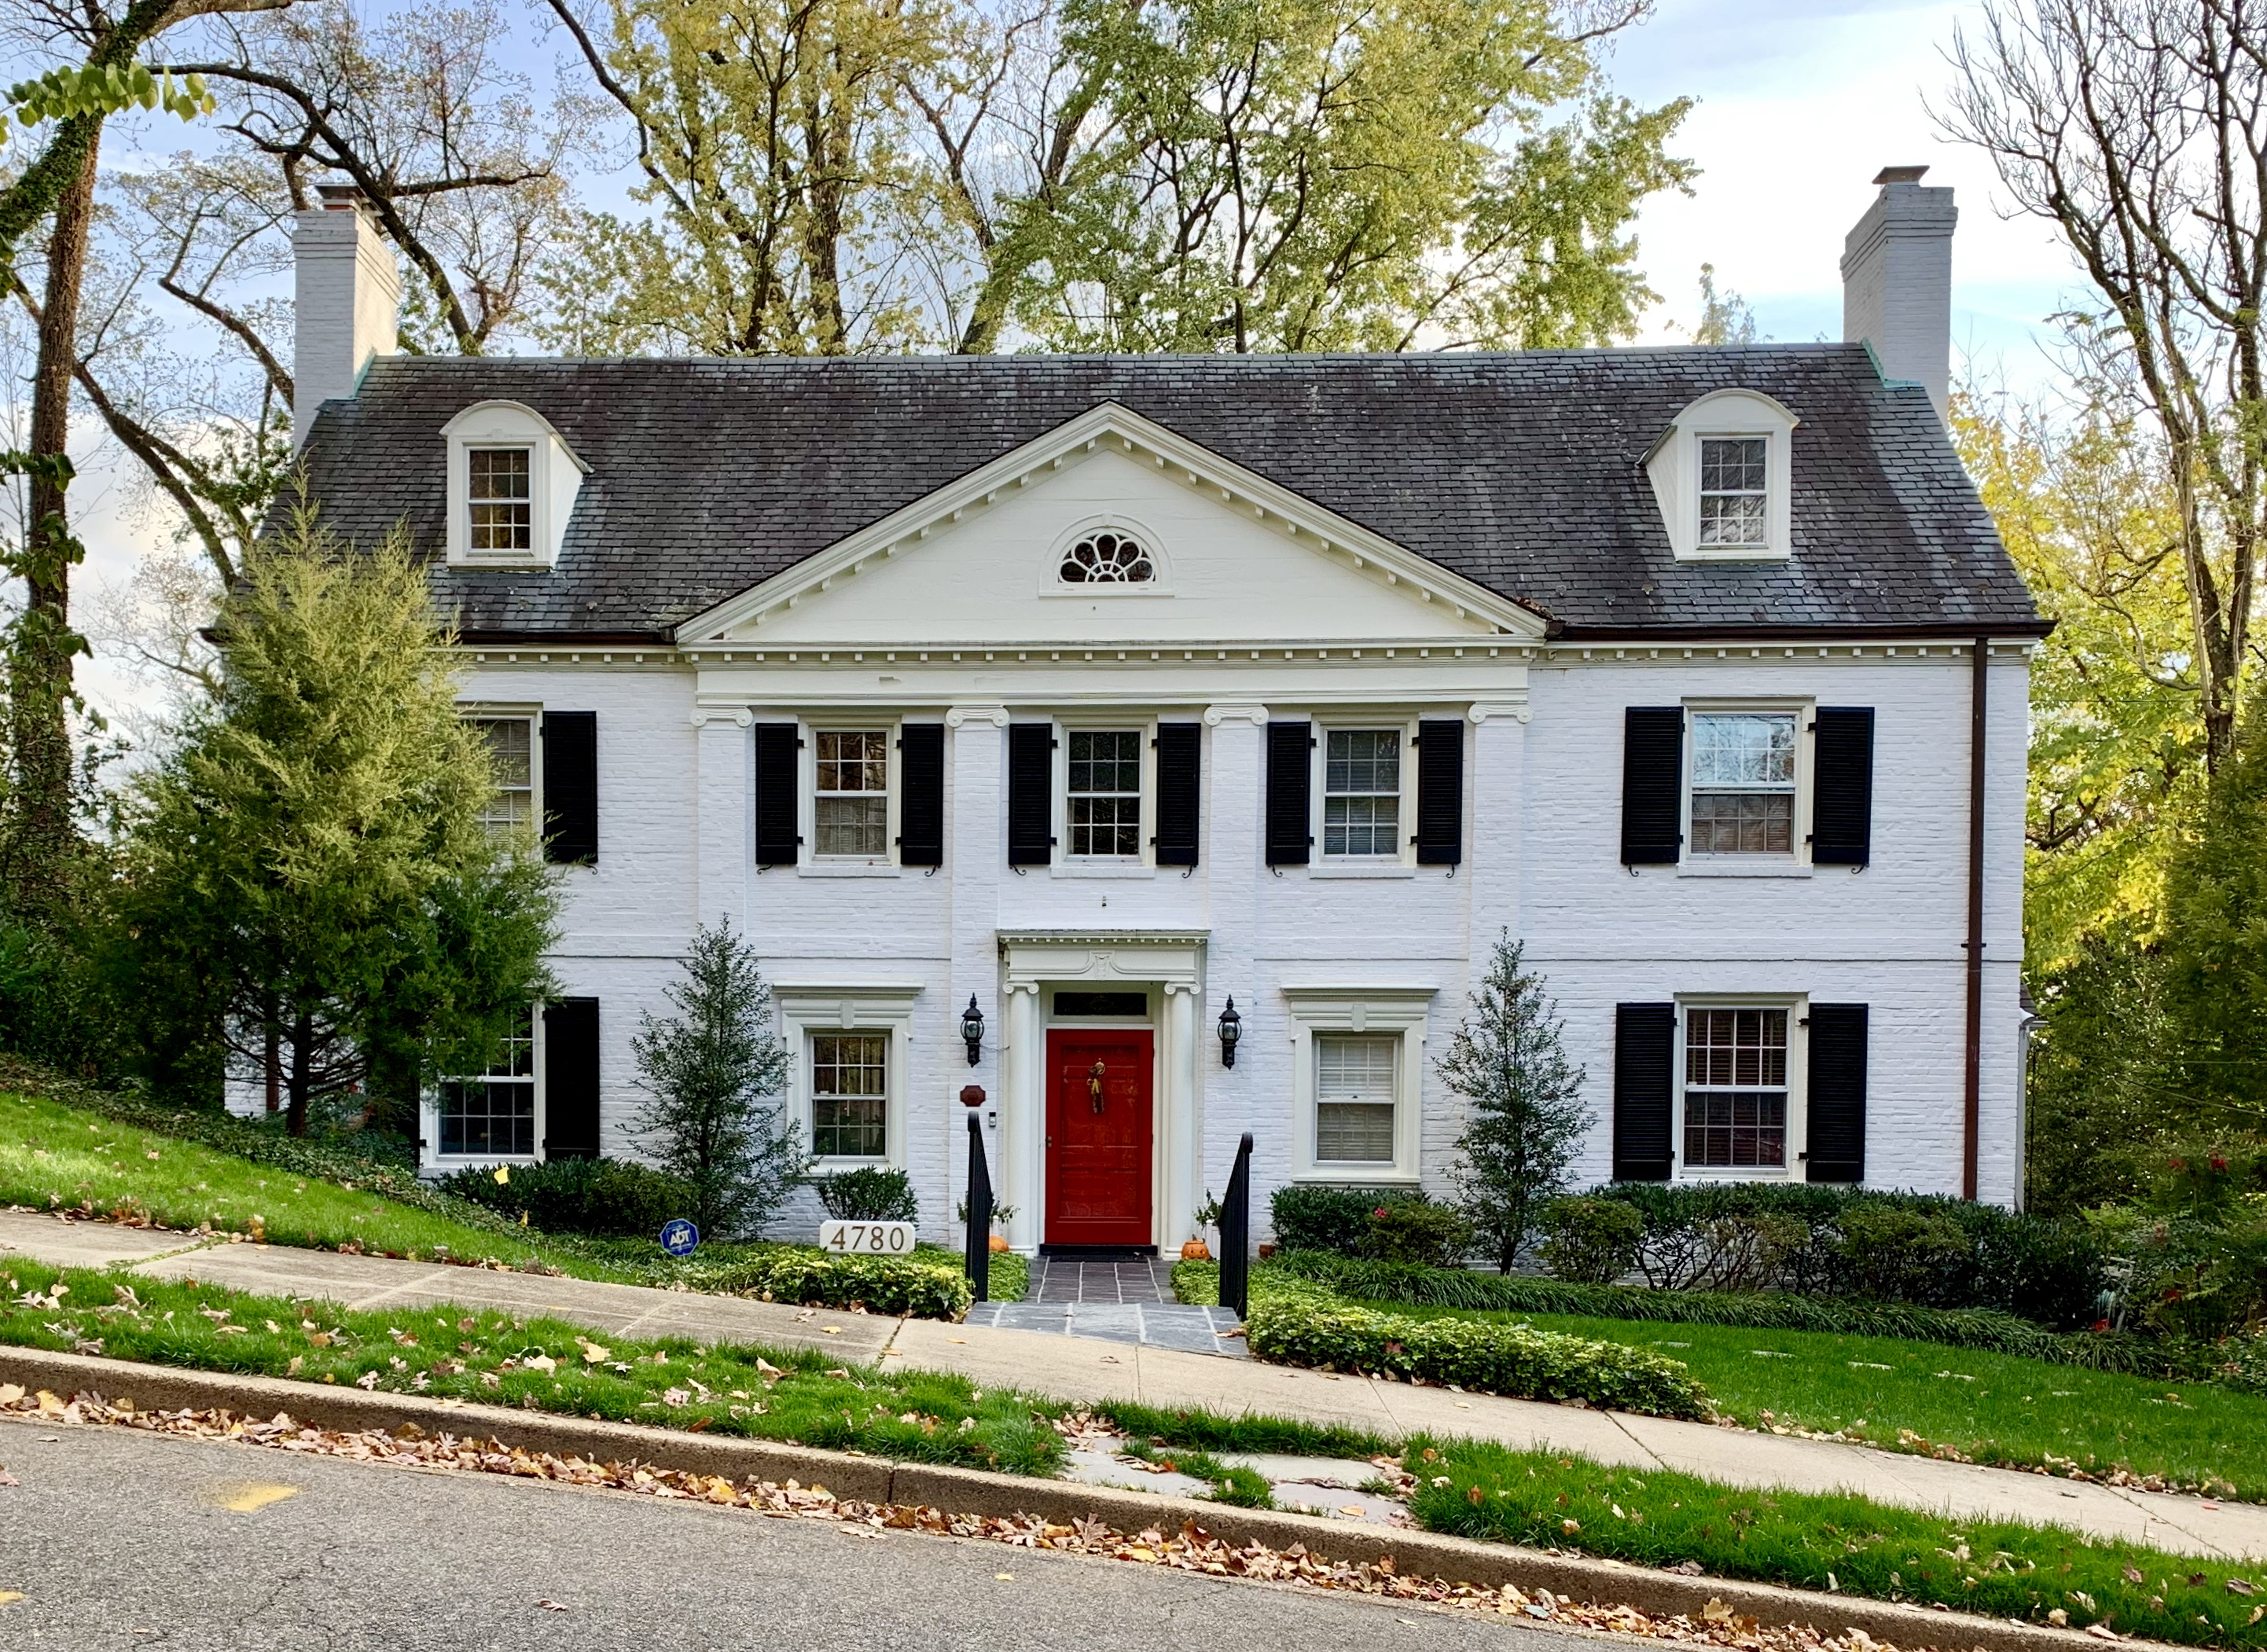 Foxhall Crescent, DC Luxury Real Estate and Homes For Sale. Dexter Street NW